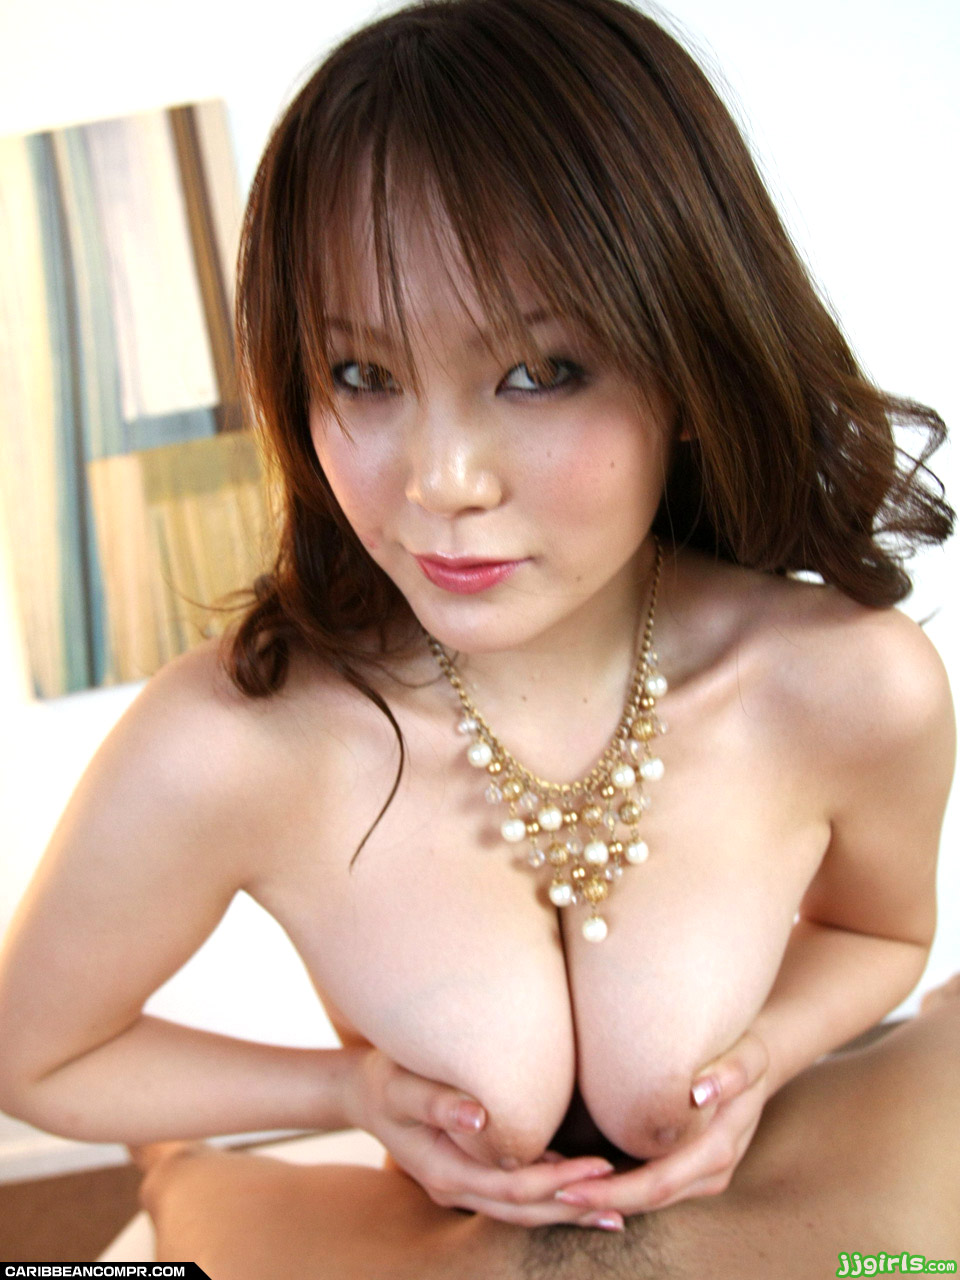 Japanese cute girl creampied unc ss026 - 2 part 3